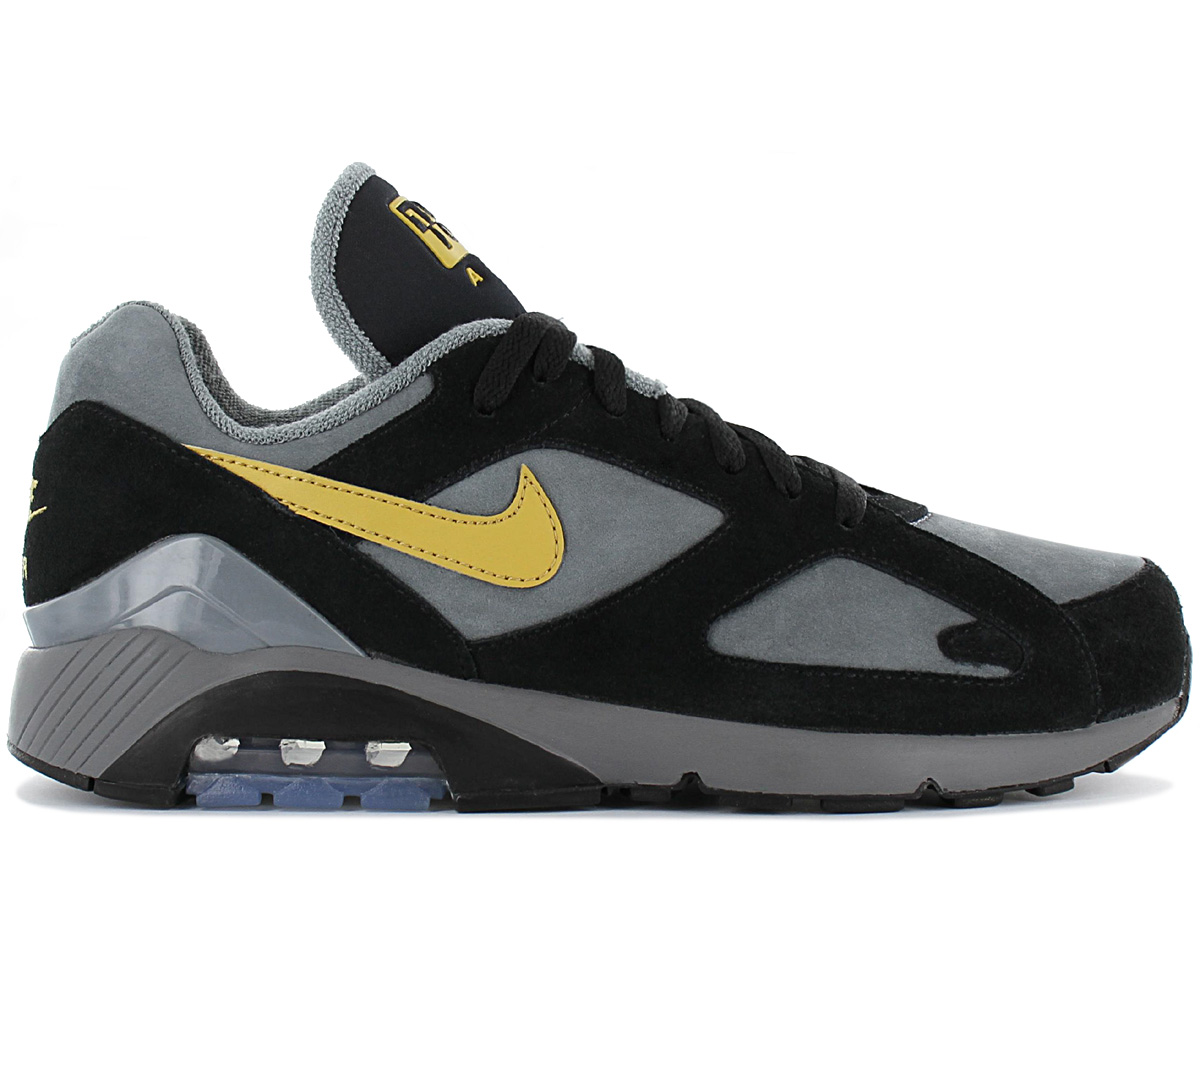 Details about Nike air max 180 Sneaker AV7023 001 Leather Gray Fashion Shoes Leisure Shoe